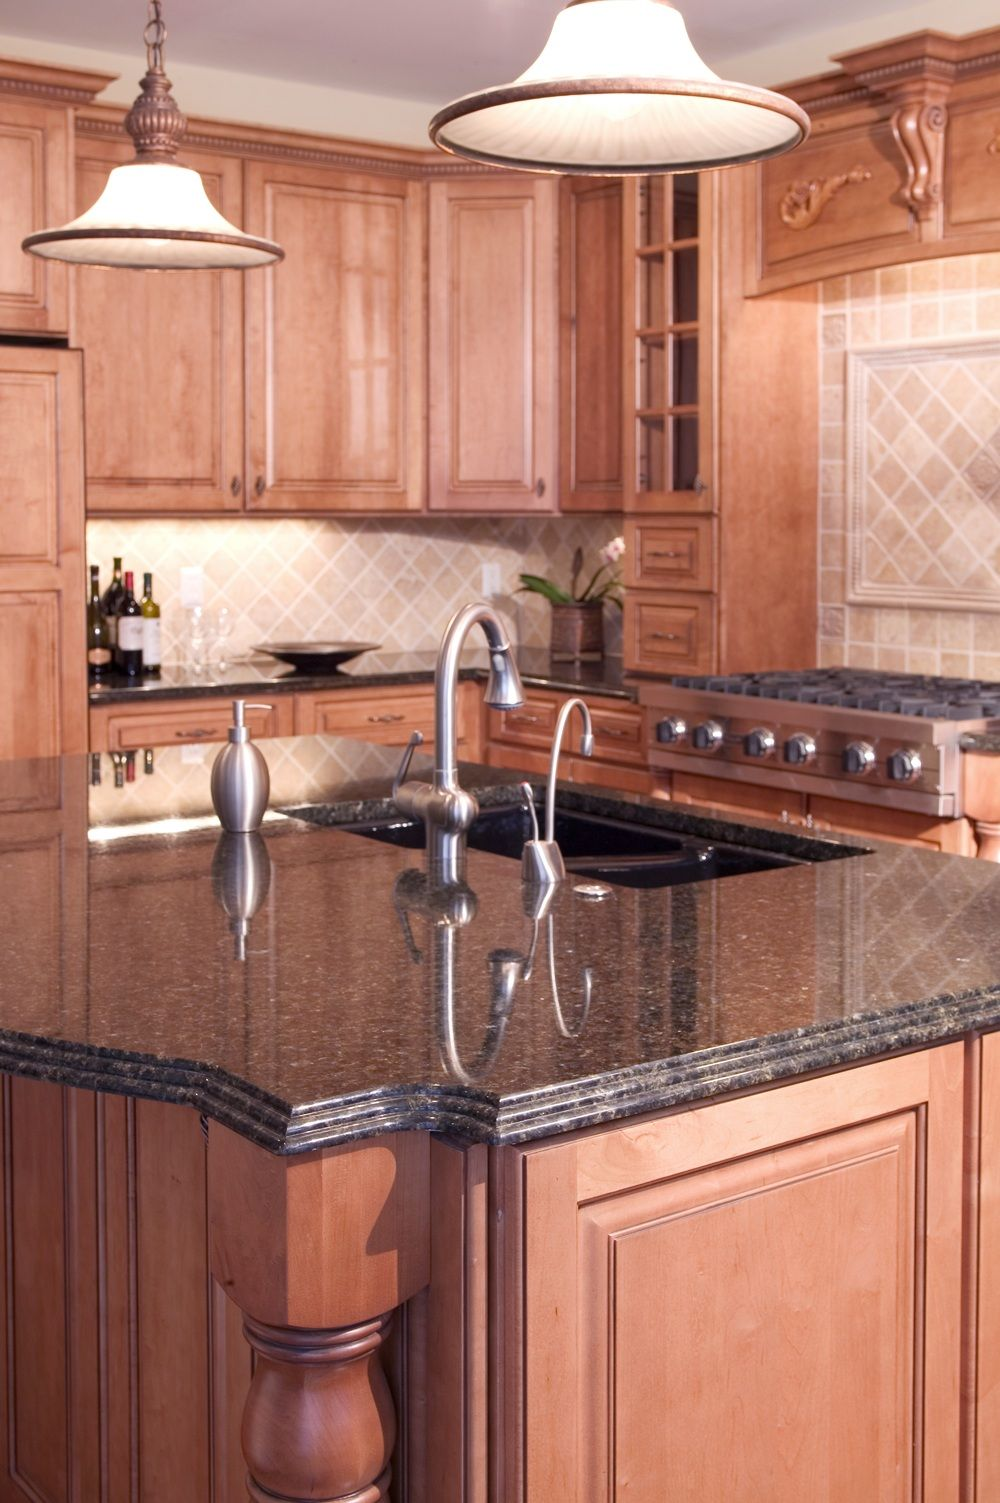 Kitchen Granite Counter Top Kitchen Cabinets And Countertops Beige Granite Countertop Colors